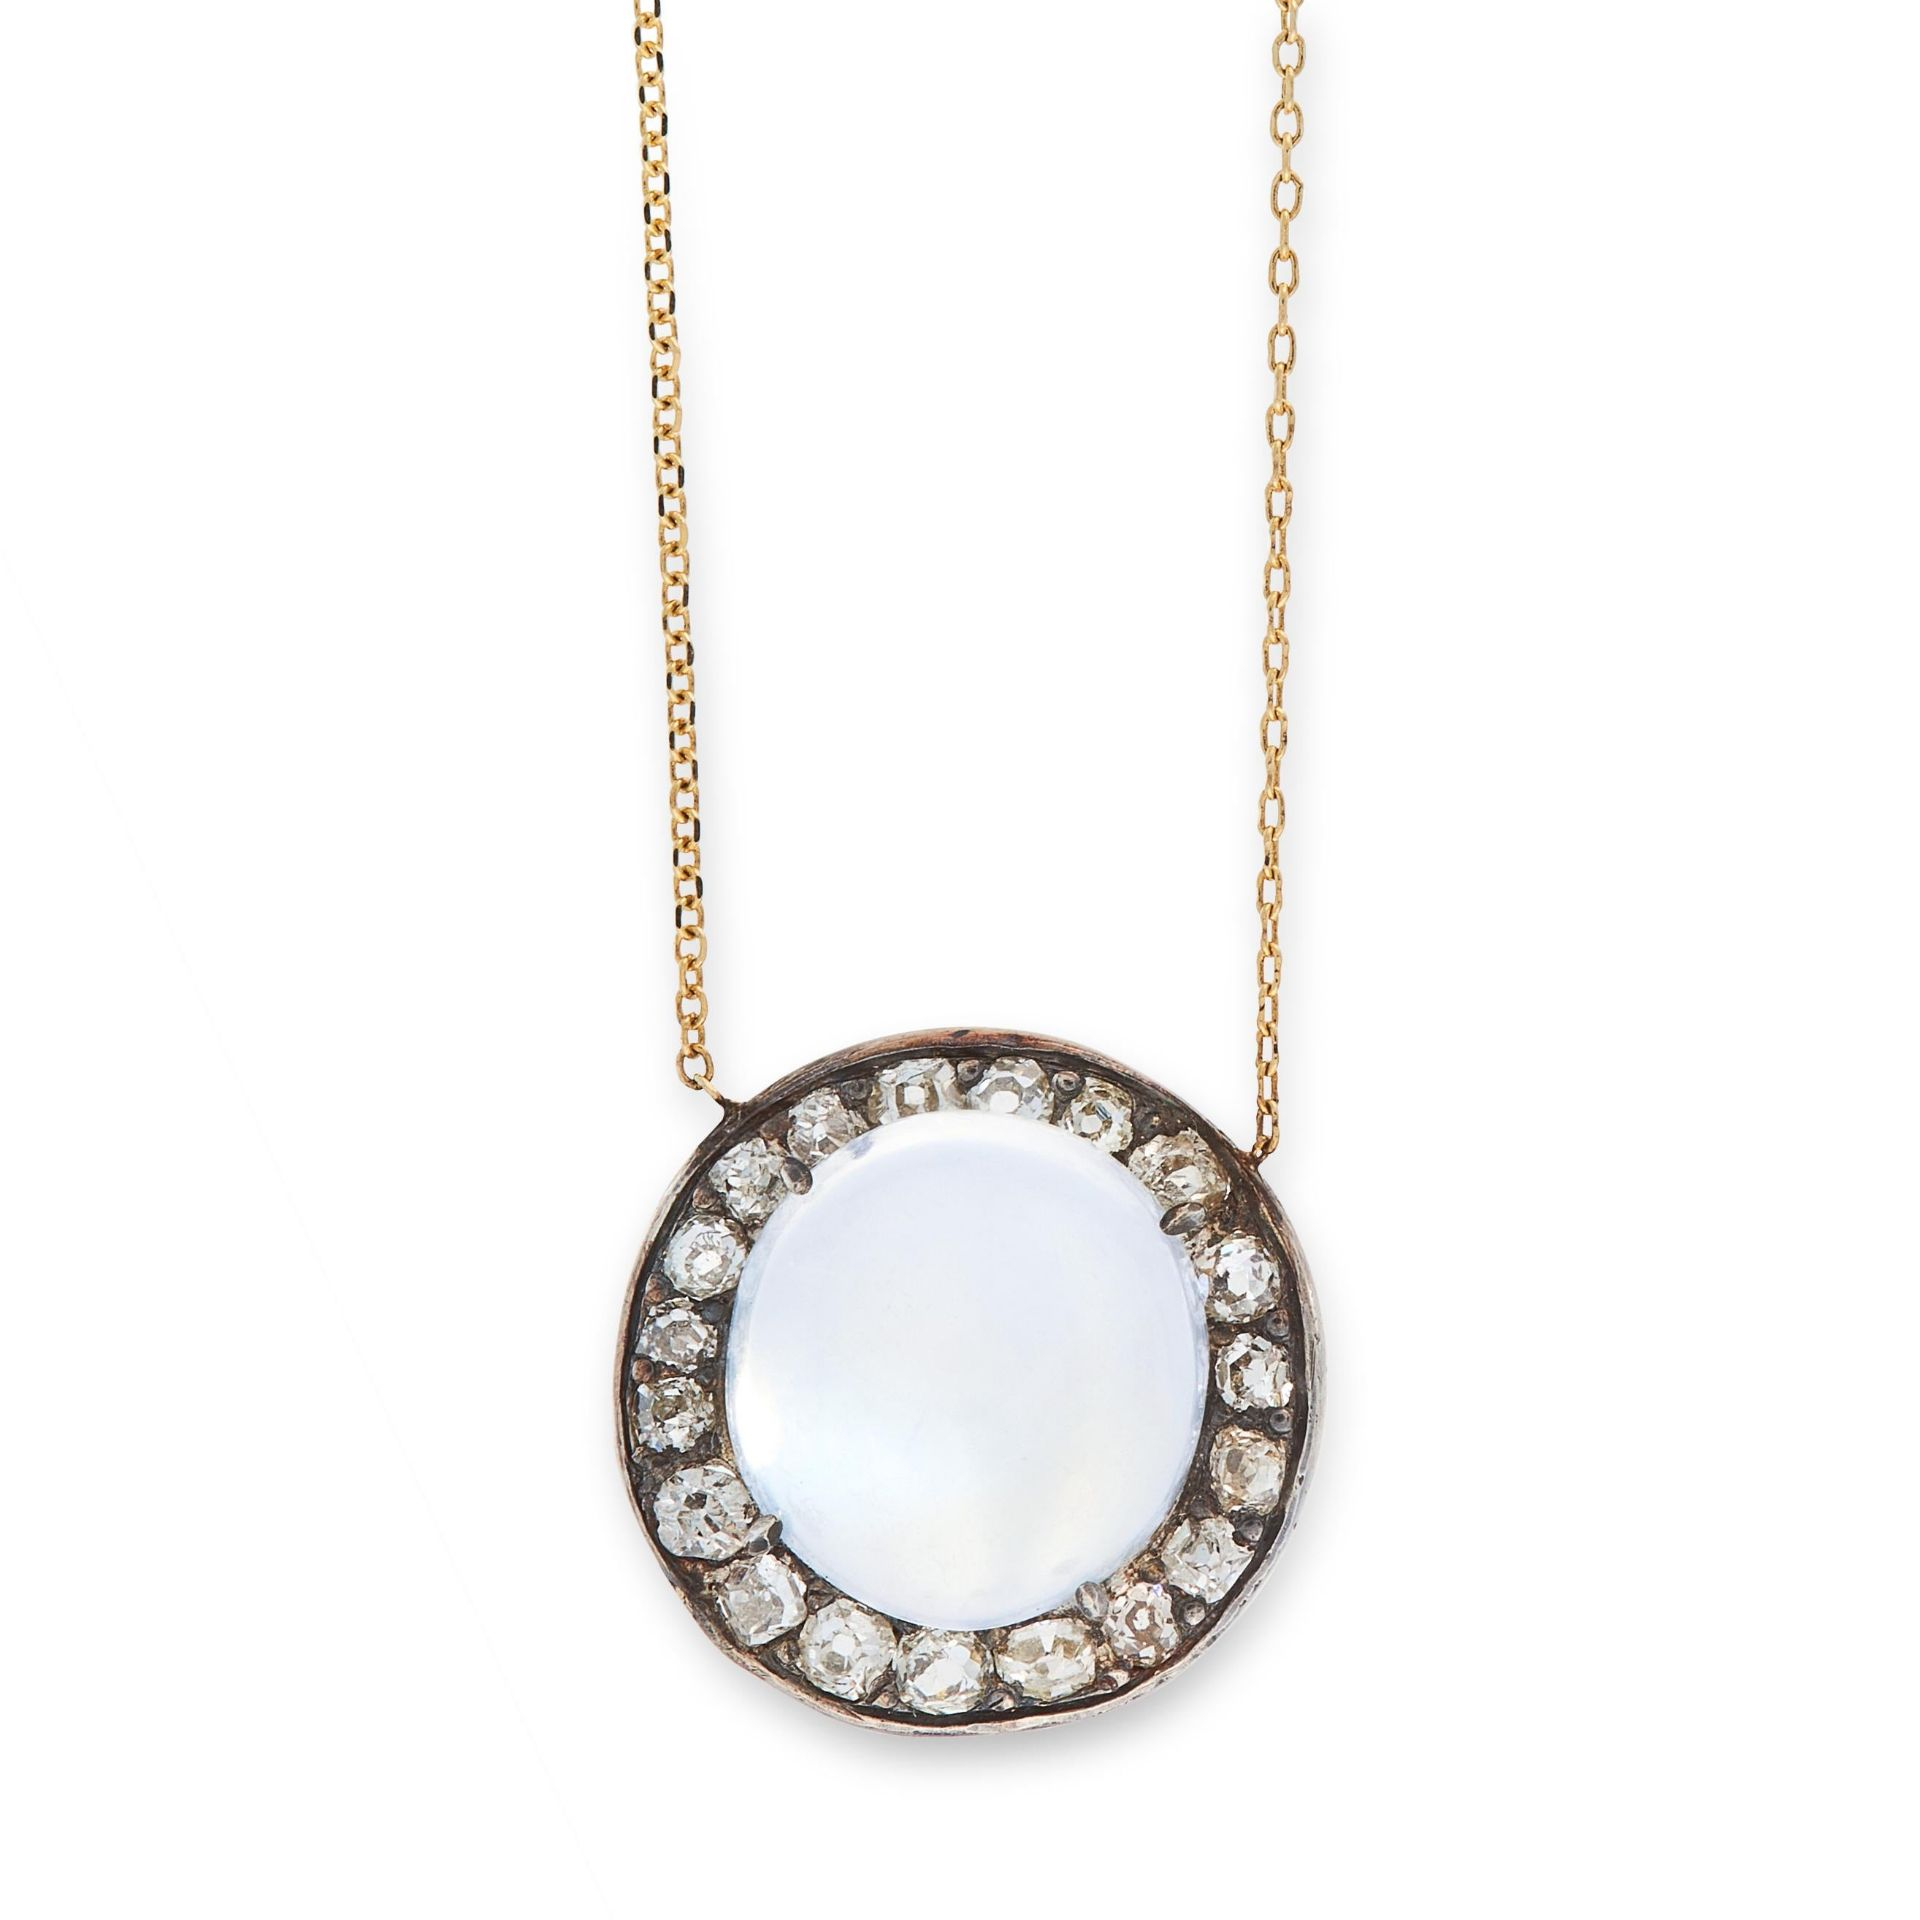 AN ANTIQUE MOONSTONE AND DIAMOND PENDANT NECKLACE in 18ct yellow gold and silver, set with a round